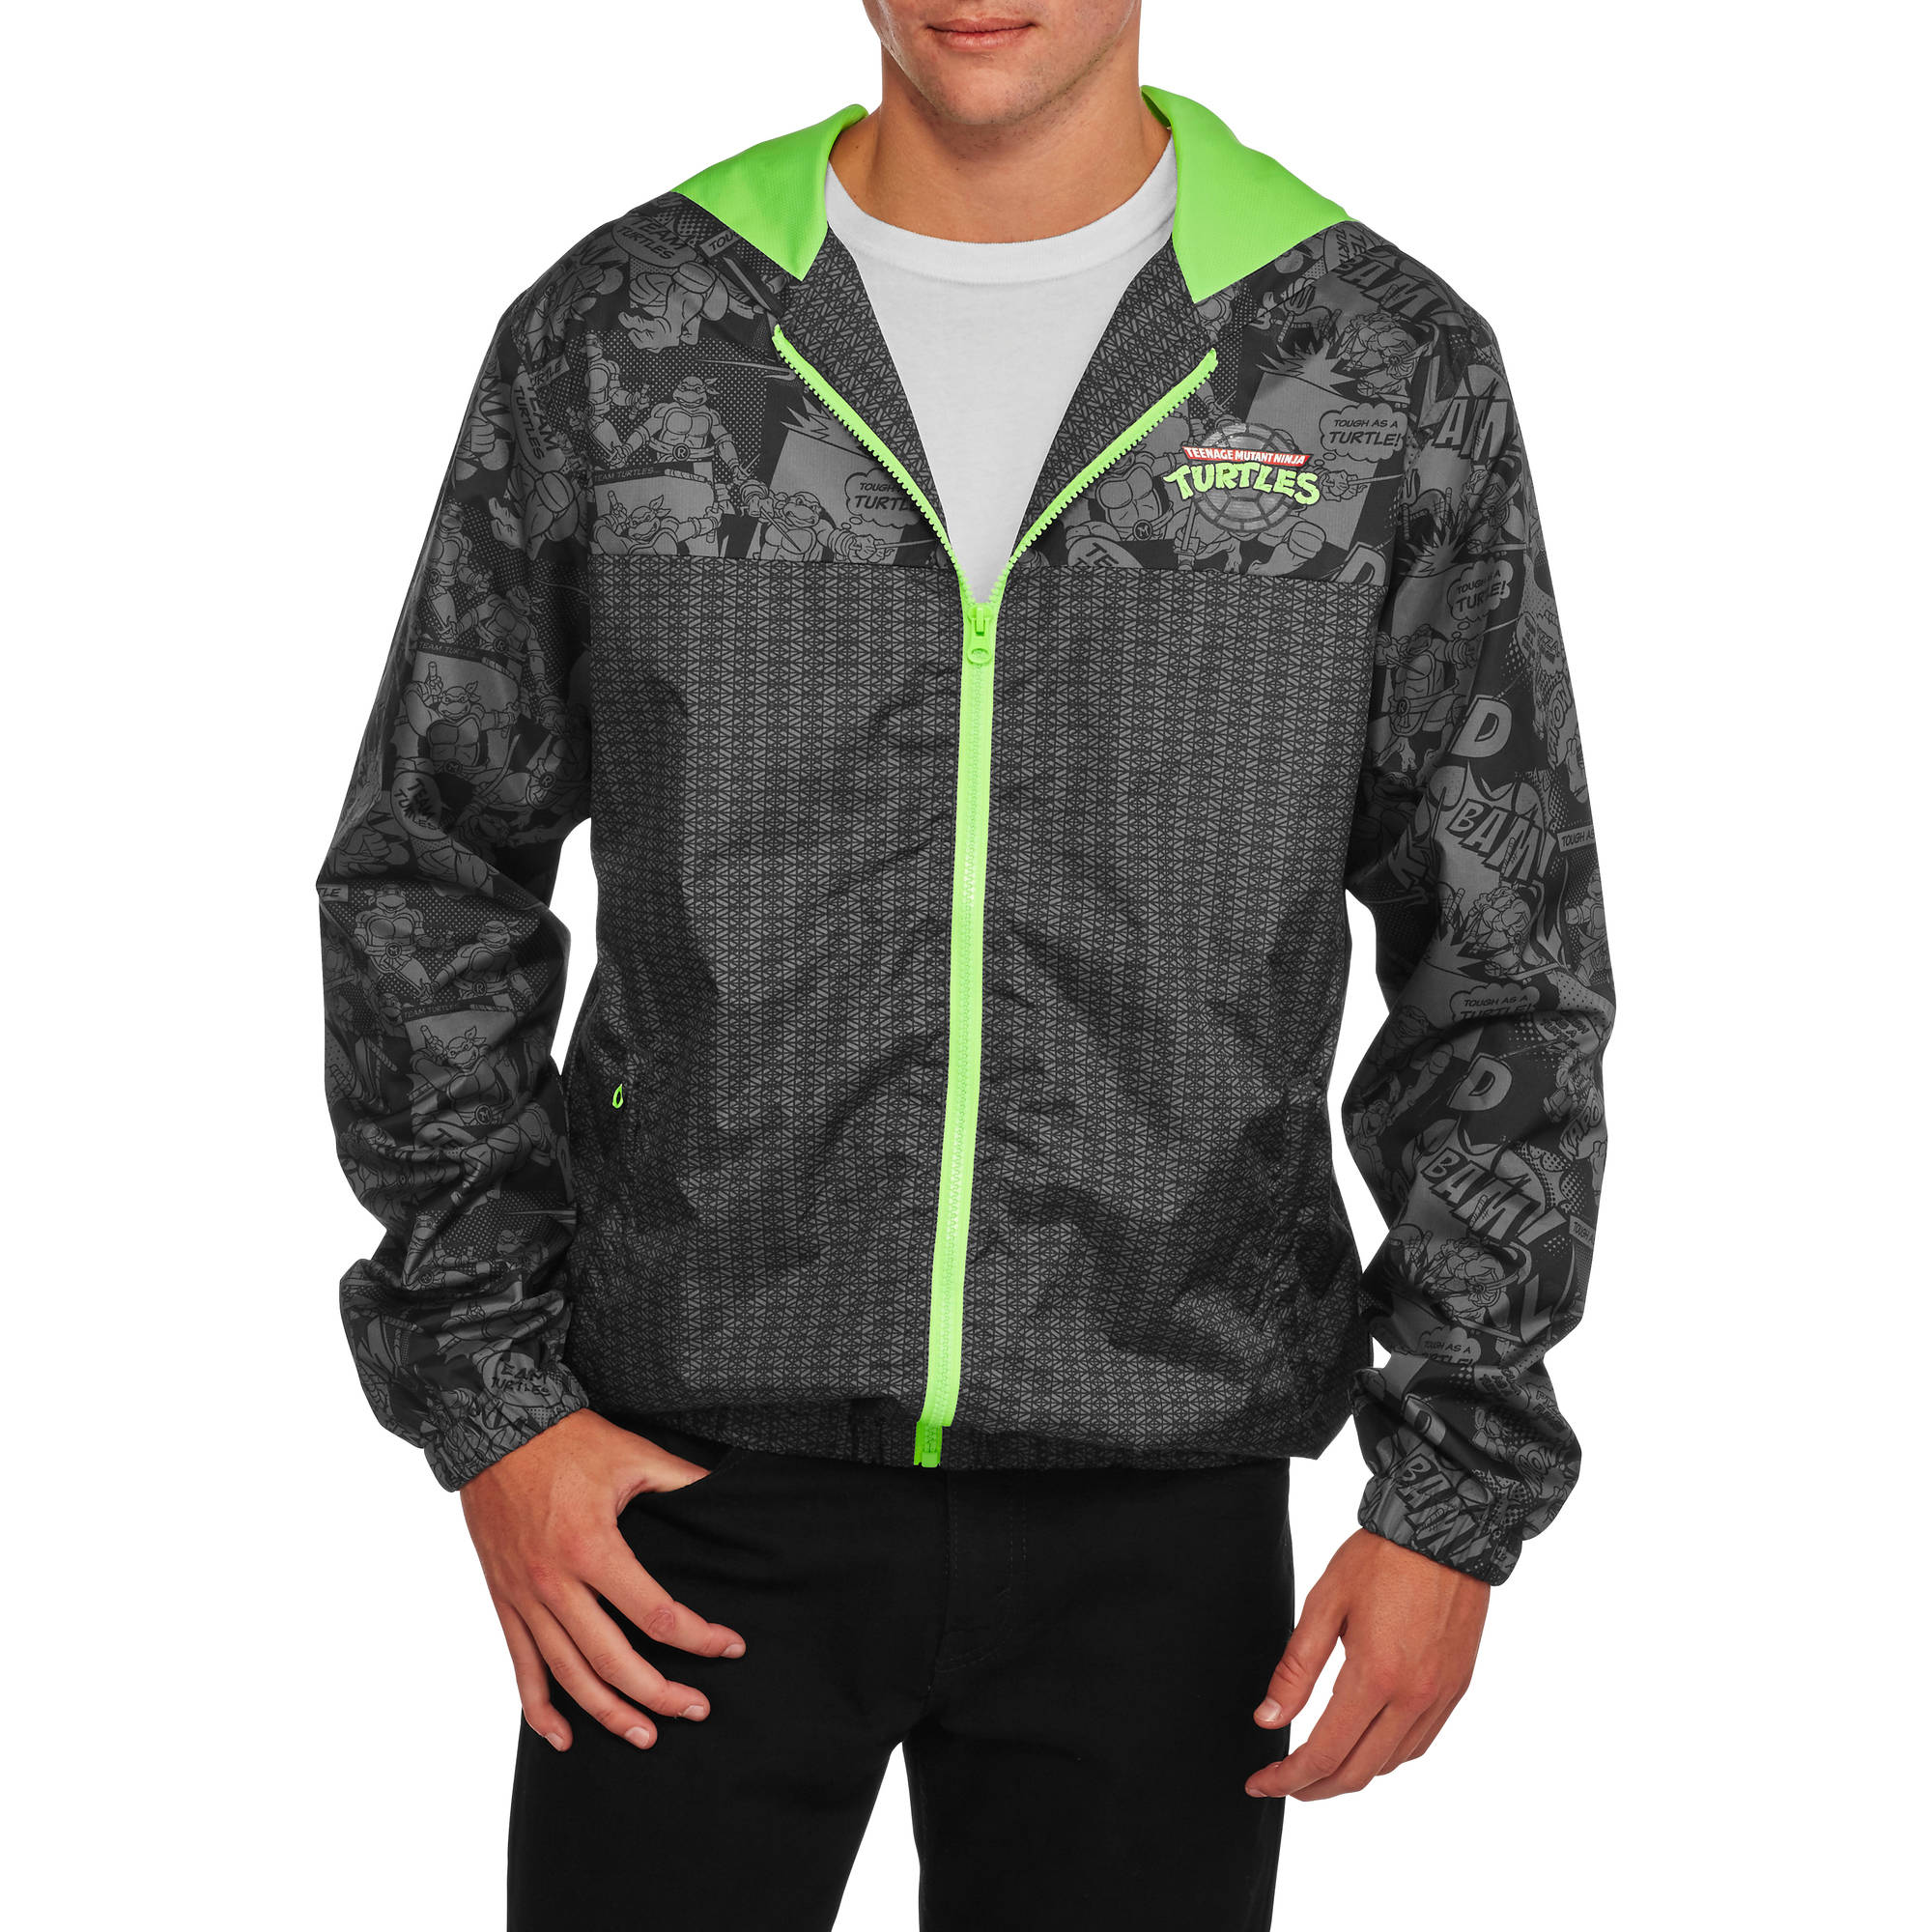 Teenage Mutant Ninja Turtles Big Men's Light Weight Full Zip Hoodie, 2XL